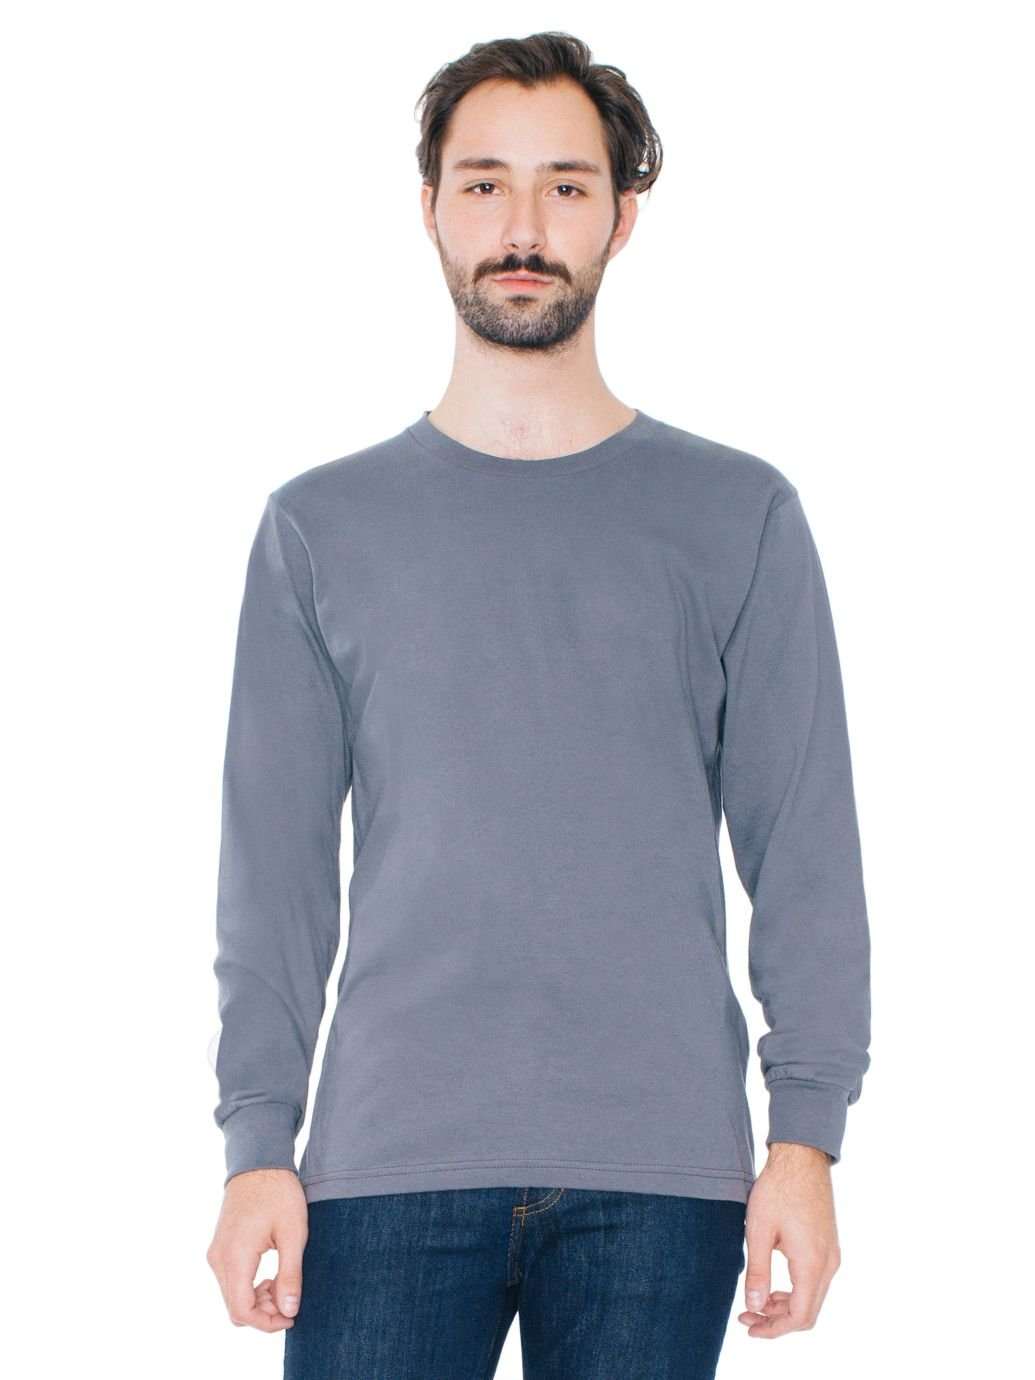 American Apparel Men Fine Jersey Crewneck Long Sleeve T-Shirt Size M Asphalt